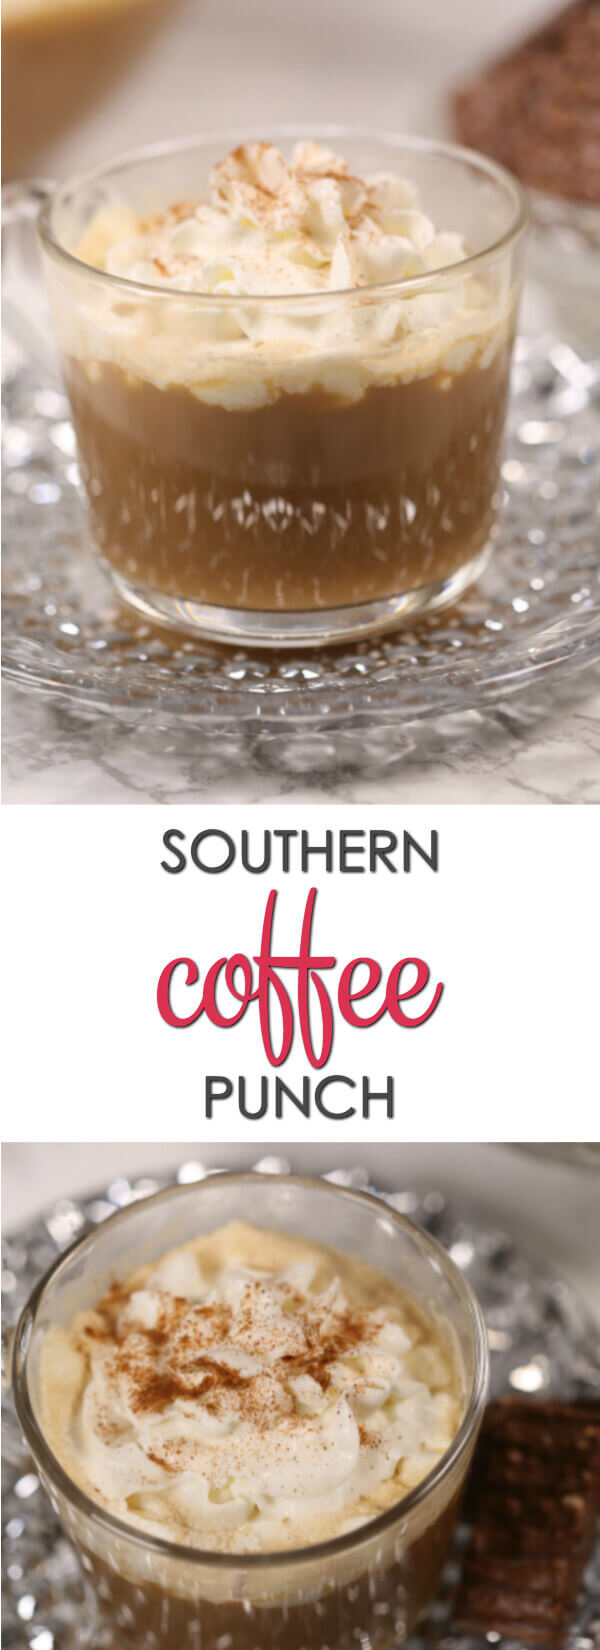 This Coffee Punch recipe is one of my favorite southern inspired recipes. It's full of coffee flavor and served cold with ice cream.  It's always a crowd pleaser.